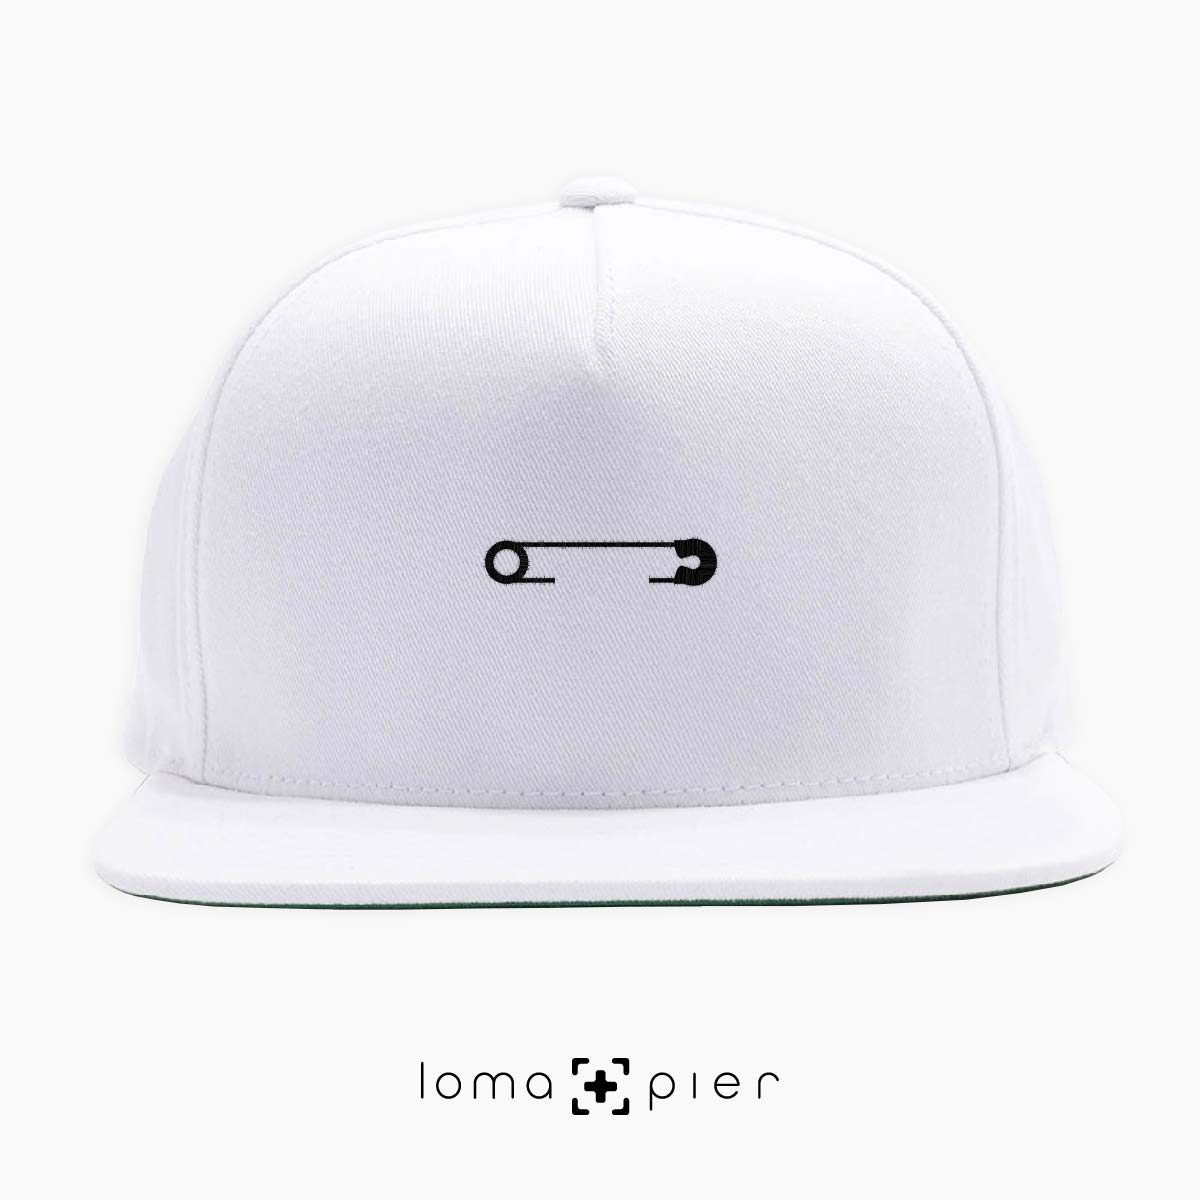 SAFETY PIN icon embroidered on a white classic snapback with black thread by loma+pier hat store